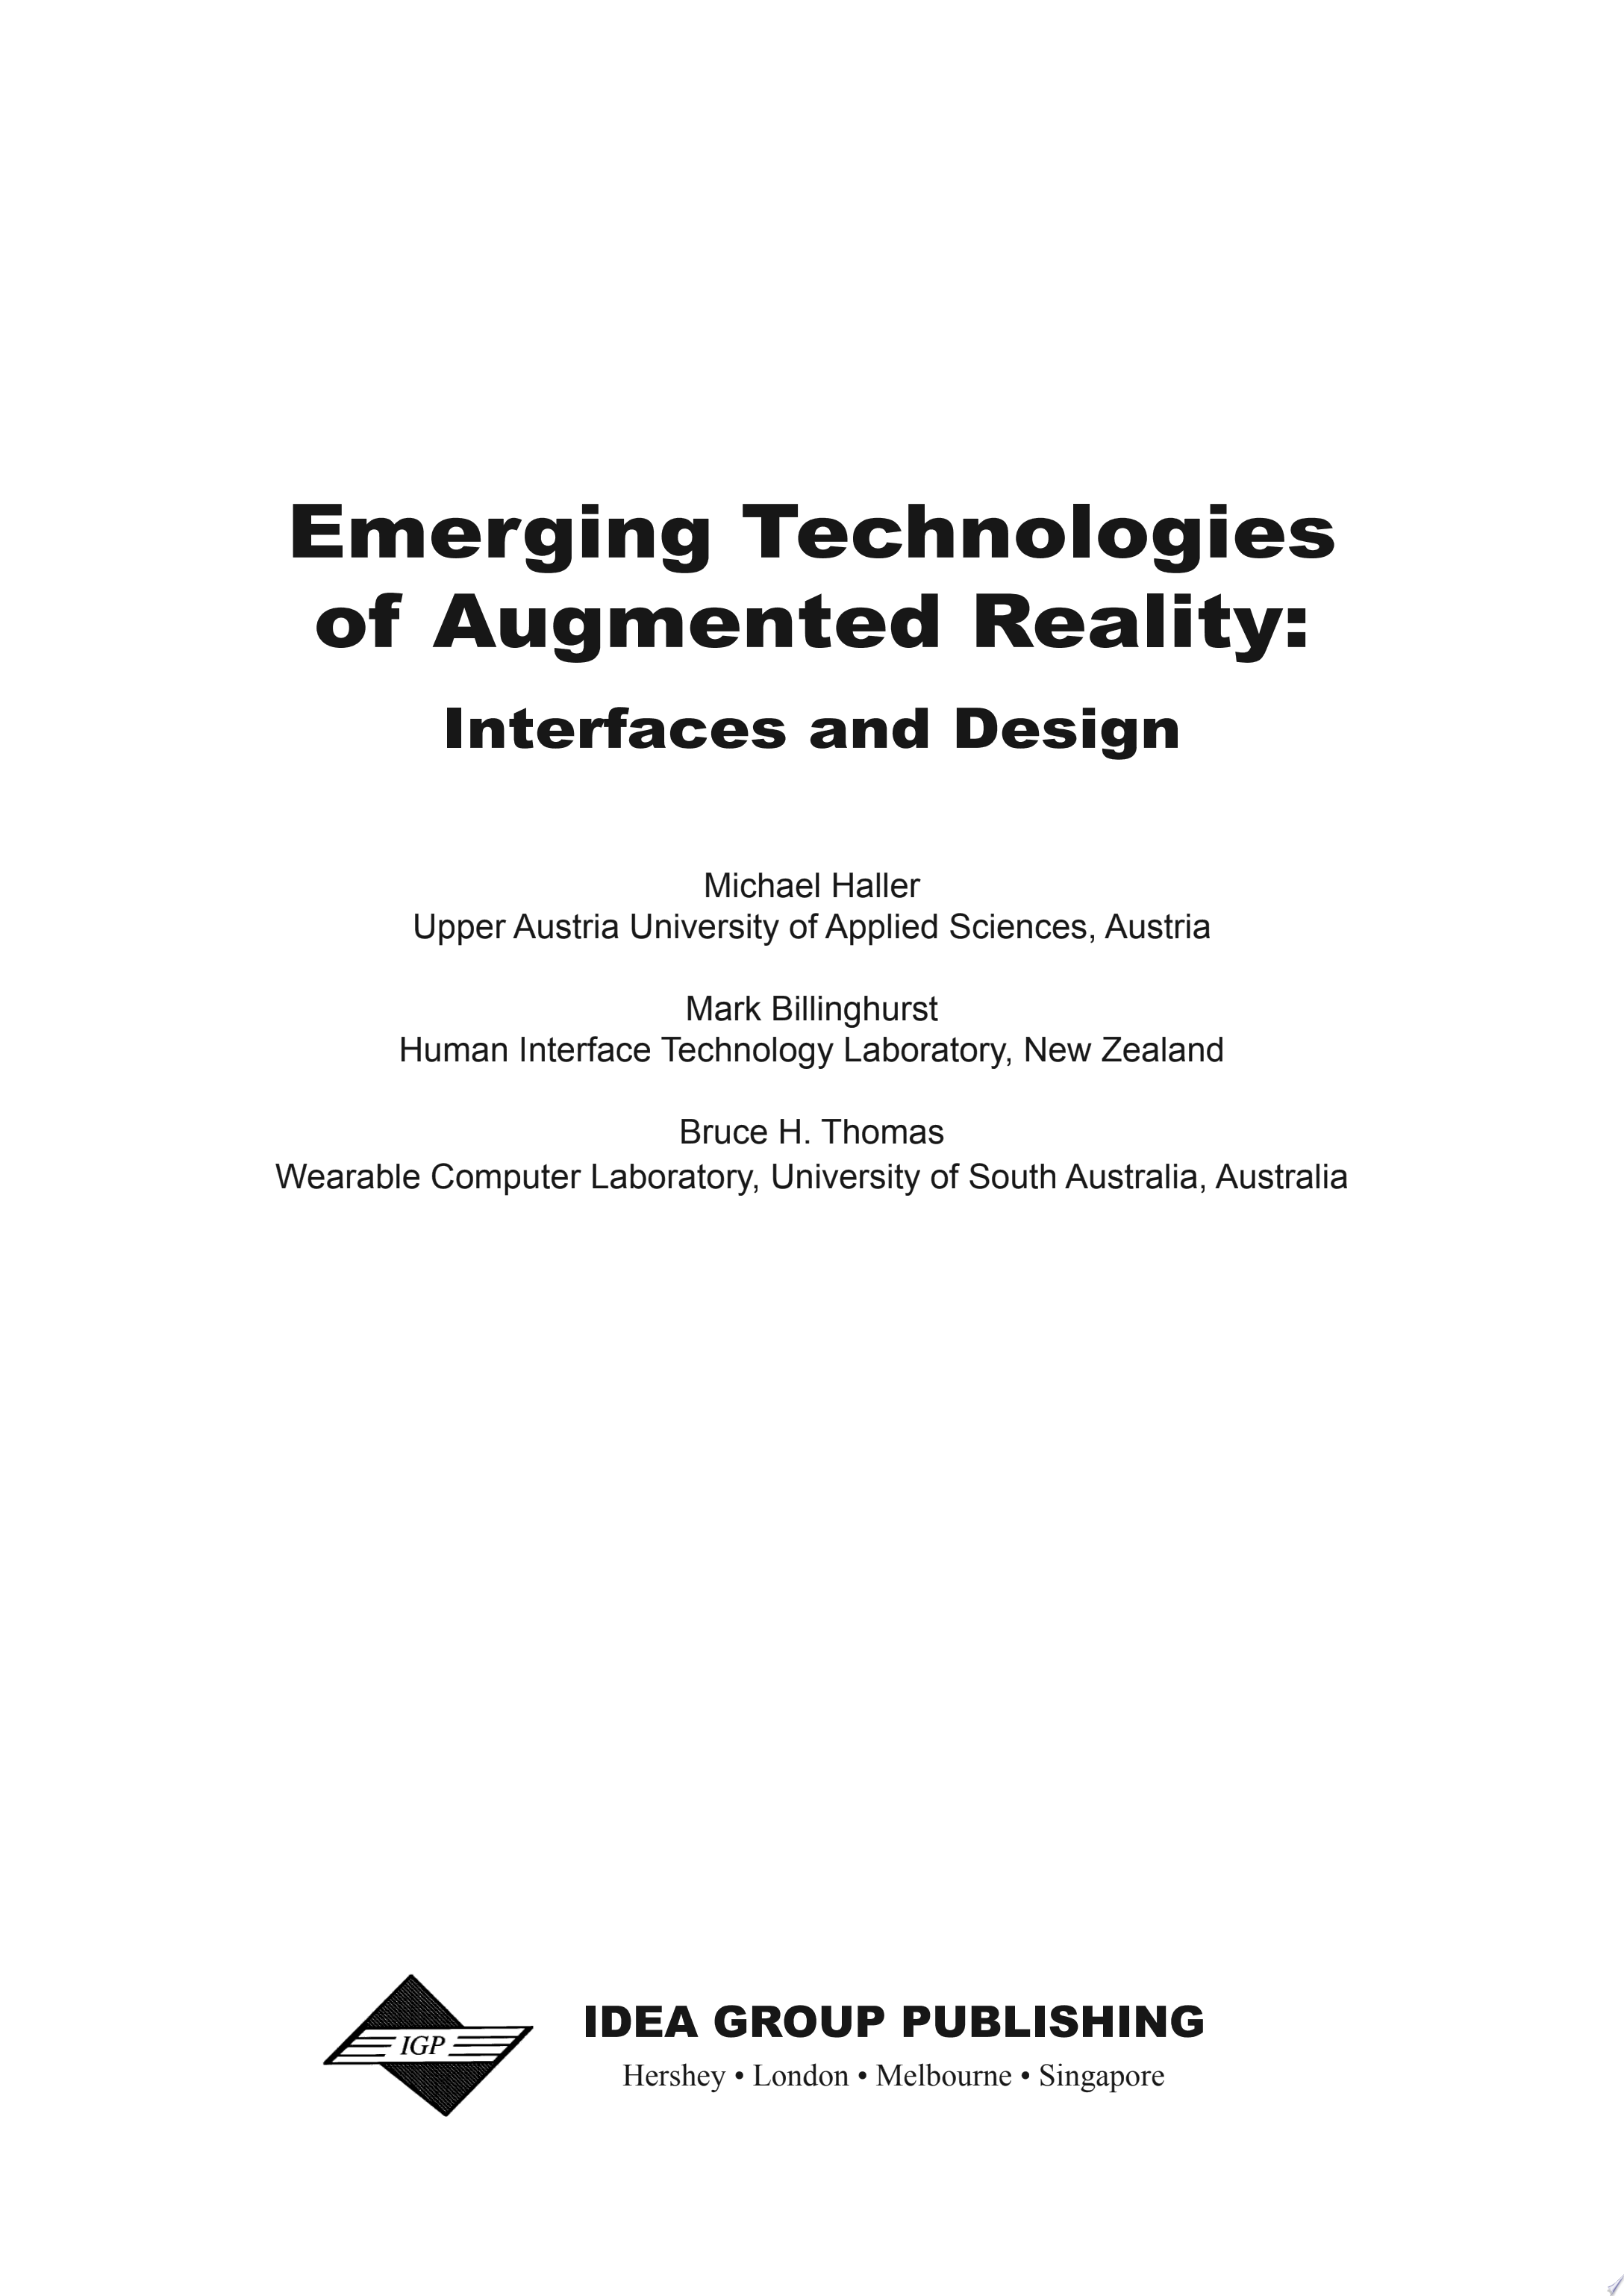 Emerging Technologies of Augmented Reality  Interfaces and Design